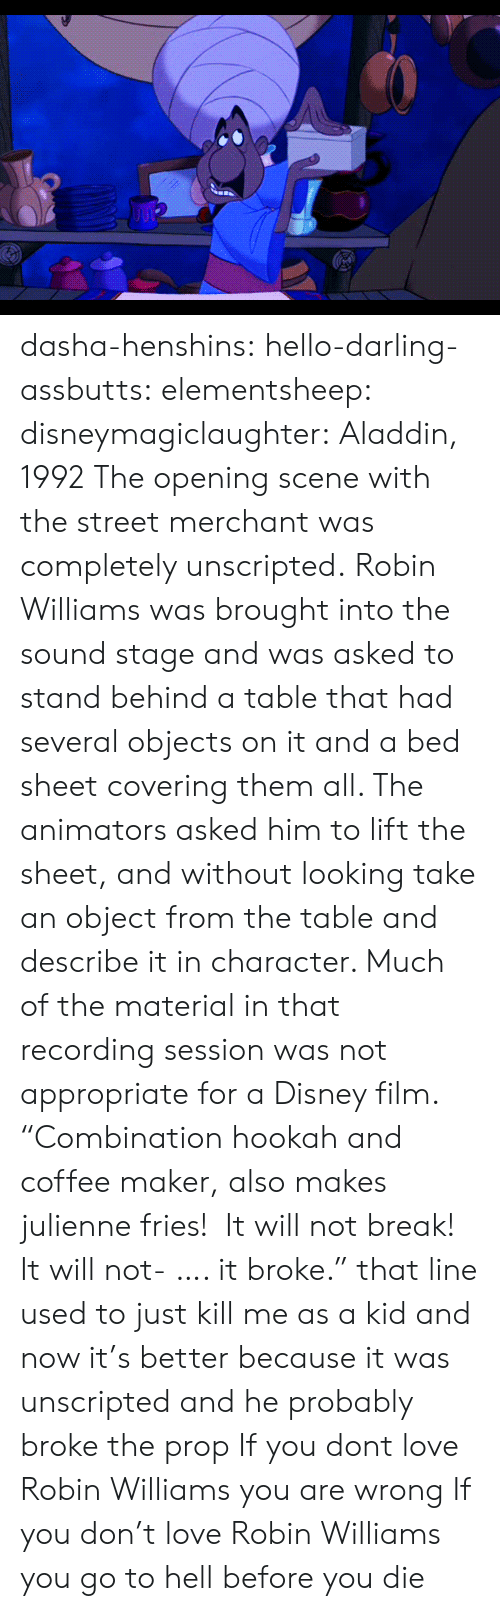 "Aladdin: dasha-henshins: hello-darling-assbutts:  elementsheep:  disneymagiclaughter:  Aladdin, 1992 The opening scene with the street merchant was completely unscripted. Robin Williams was brought into the sound stage and was asked to stand behind a table that had several objects on it and a bed sheet covering them all. The animators asked him to lift the sheet, and without looking take an object from the table and describe it in character. Much of the material in that recording session was not appropriate for a Disney film.   ""Combination hookah and coffee maker, also makes julienne fries!  It will not break! It will not- …. it broke."" that line used to just kill me as a kid and now it's better because it was unscripted and he probably broke the prop  If you dont love Robin Williams you are wrong   If you don't love Robin Williams you go to hell before you die"